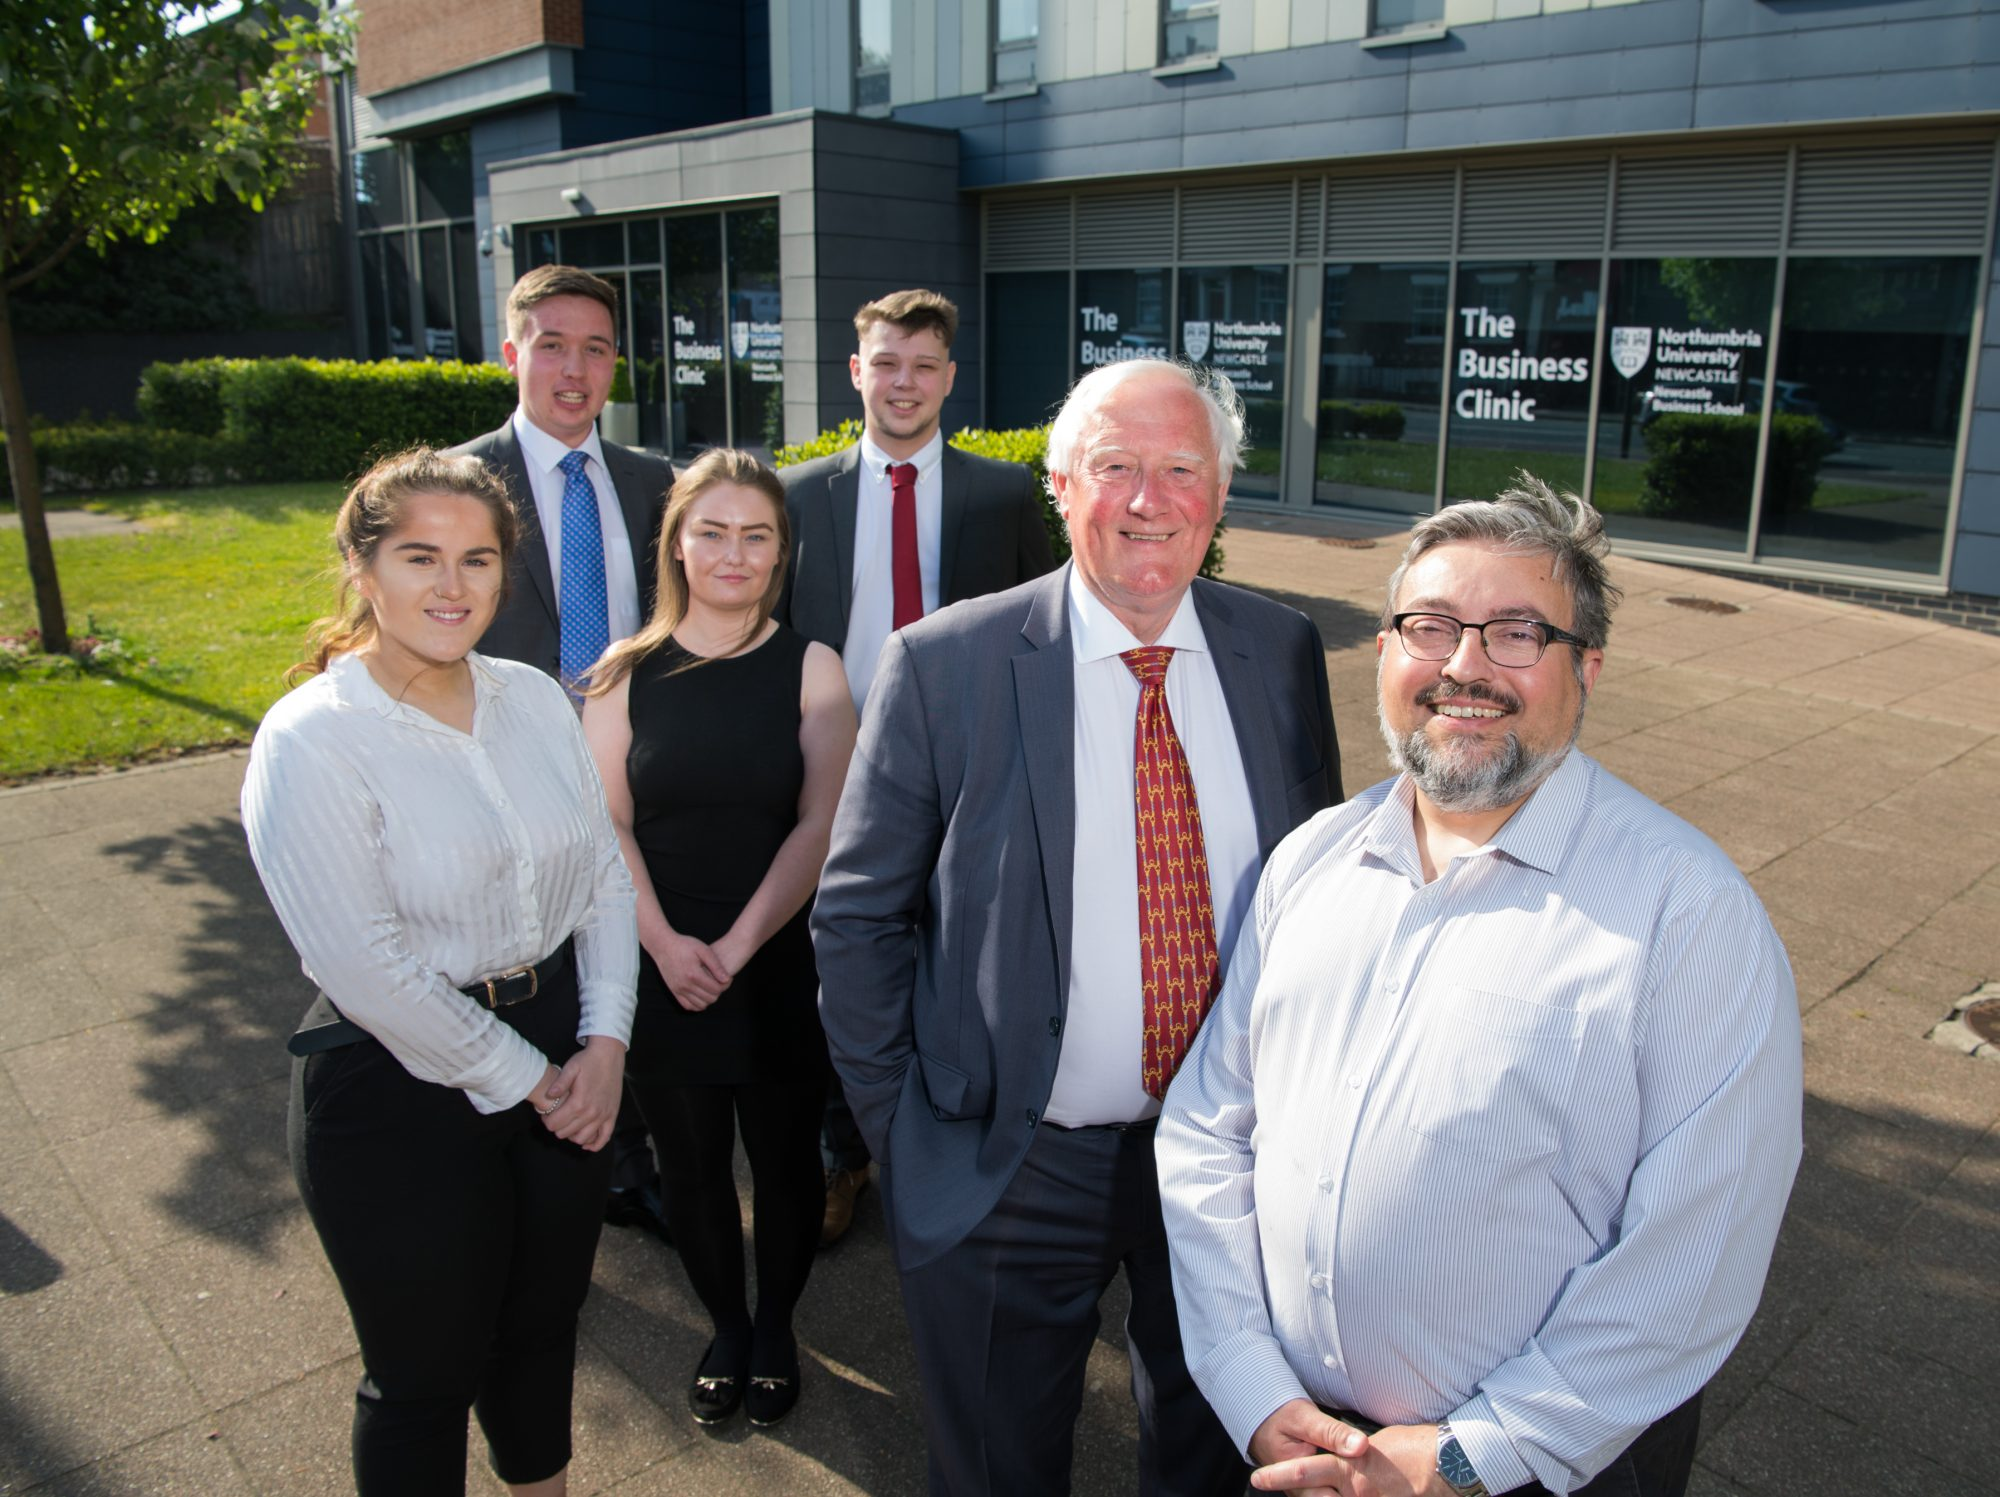 Ignition Consulting with their client NIBE (L to R) business students Kara McMahon, Henry Dodds, Elizabeth Park and Fraser Robinson with Kevan Carrick, NIBE Chair and Ron Beadle, Professor of Organisation and Business Ethics at Northumbria University.